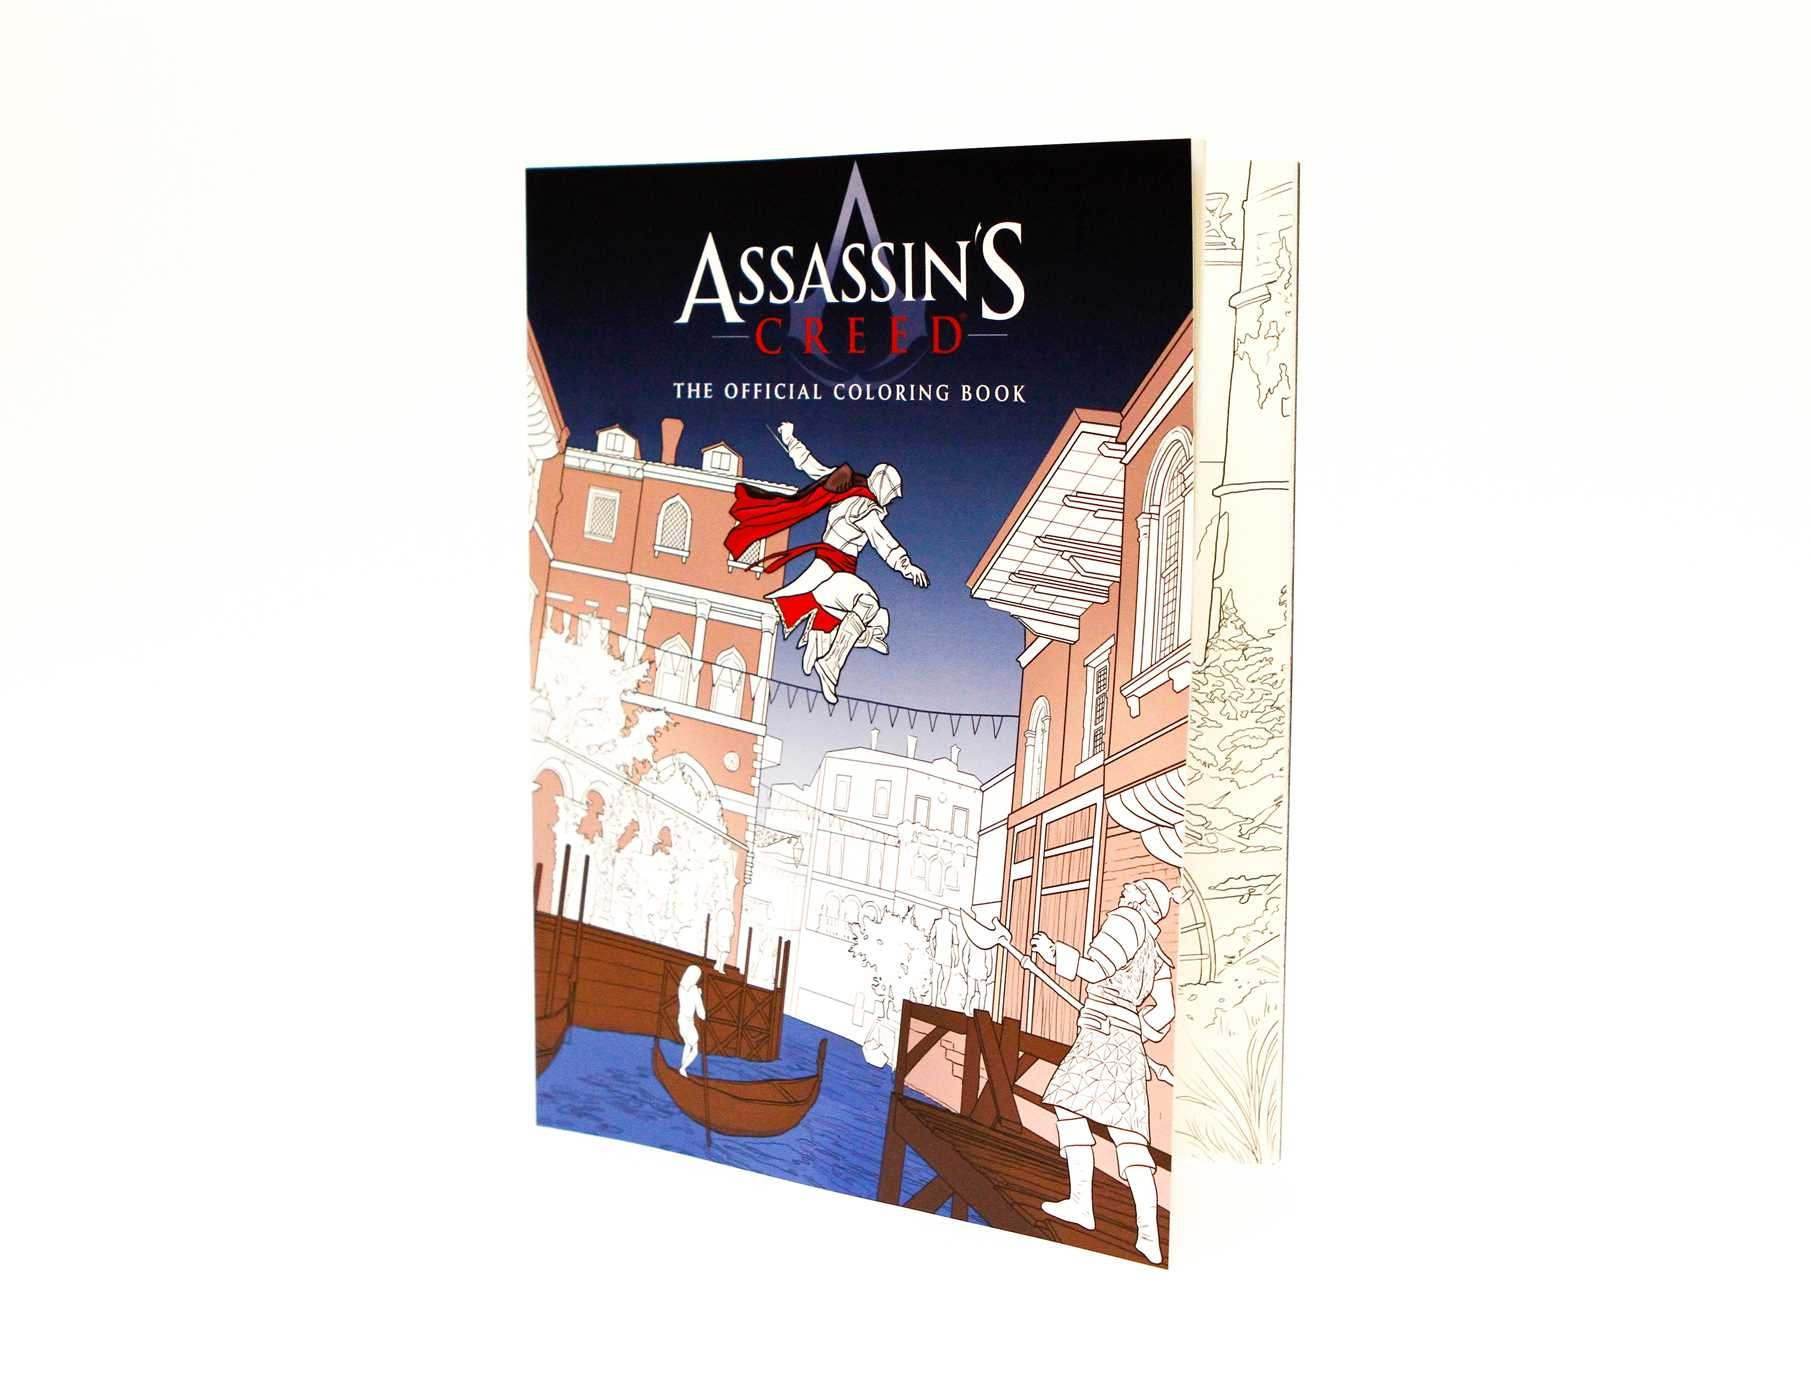 Coloring Pages For New Years 2016 : Assassin s creed the official coloring book insight editions